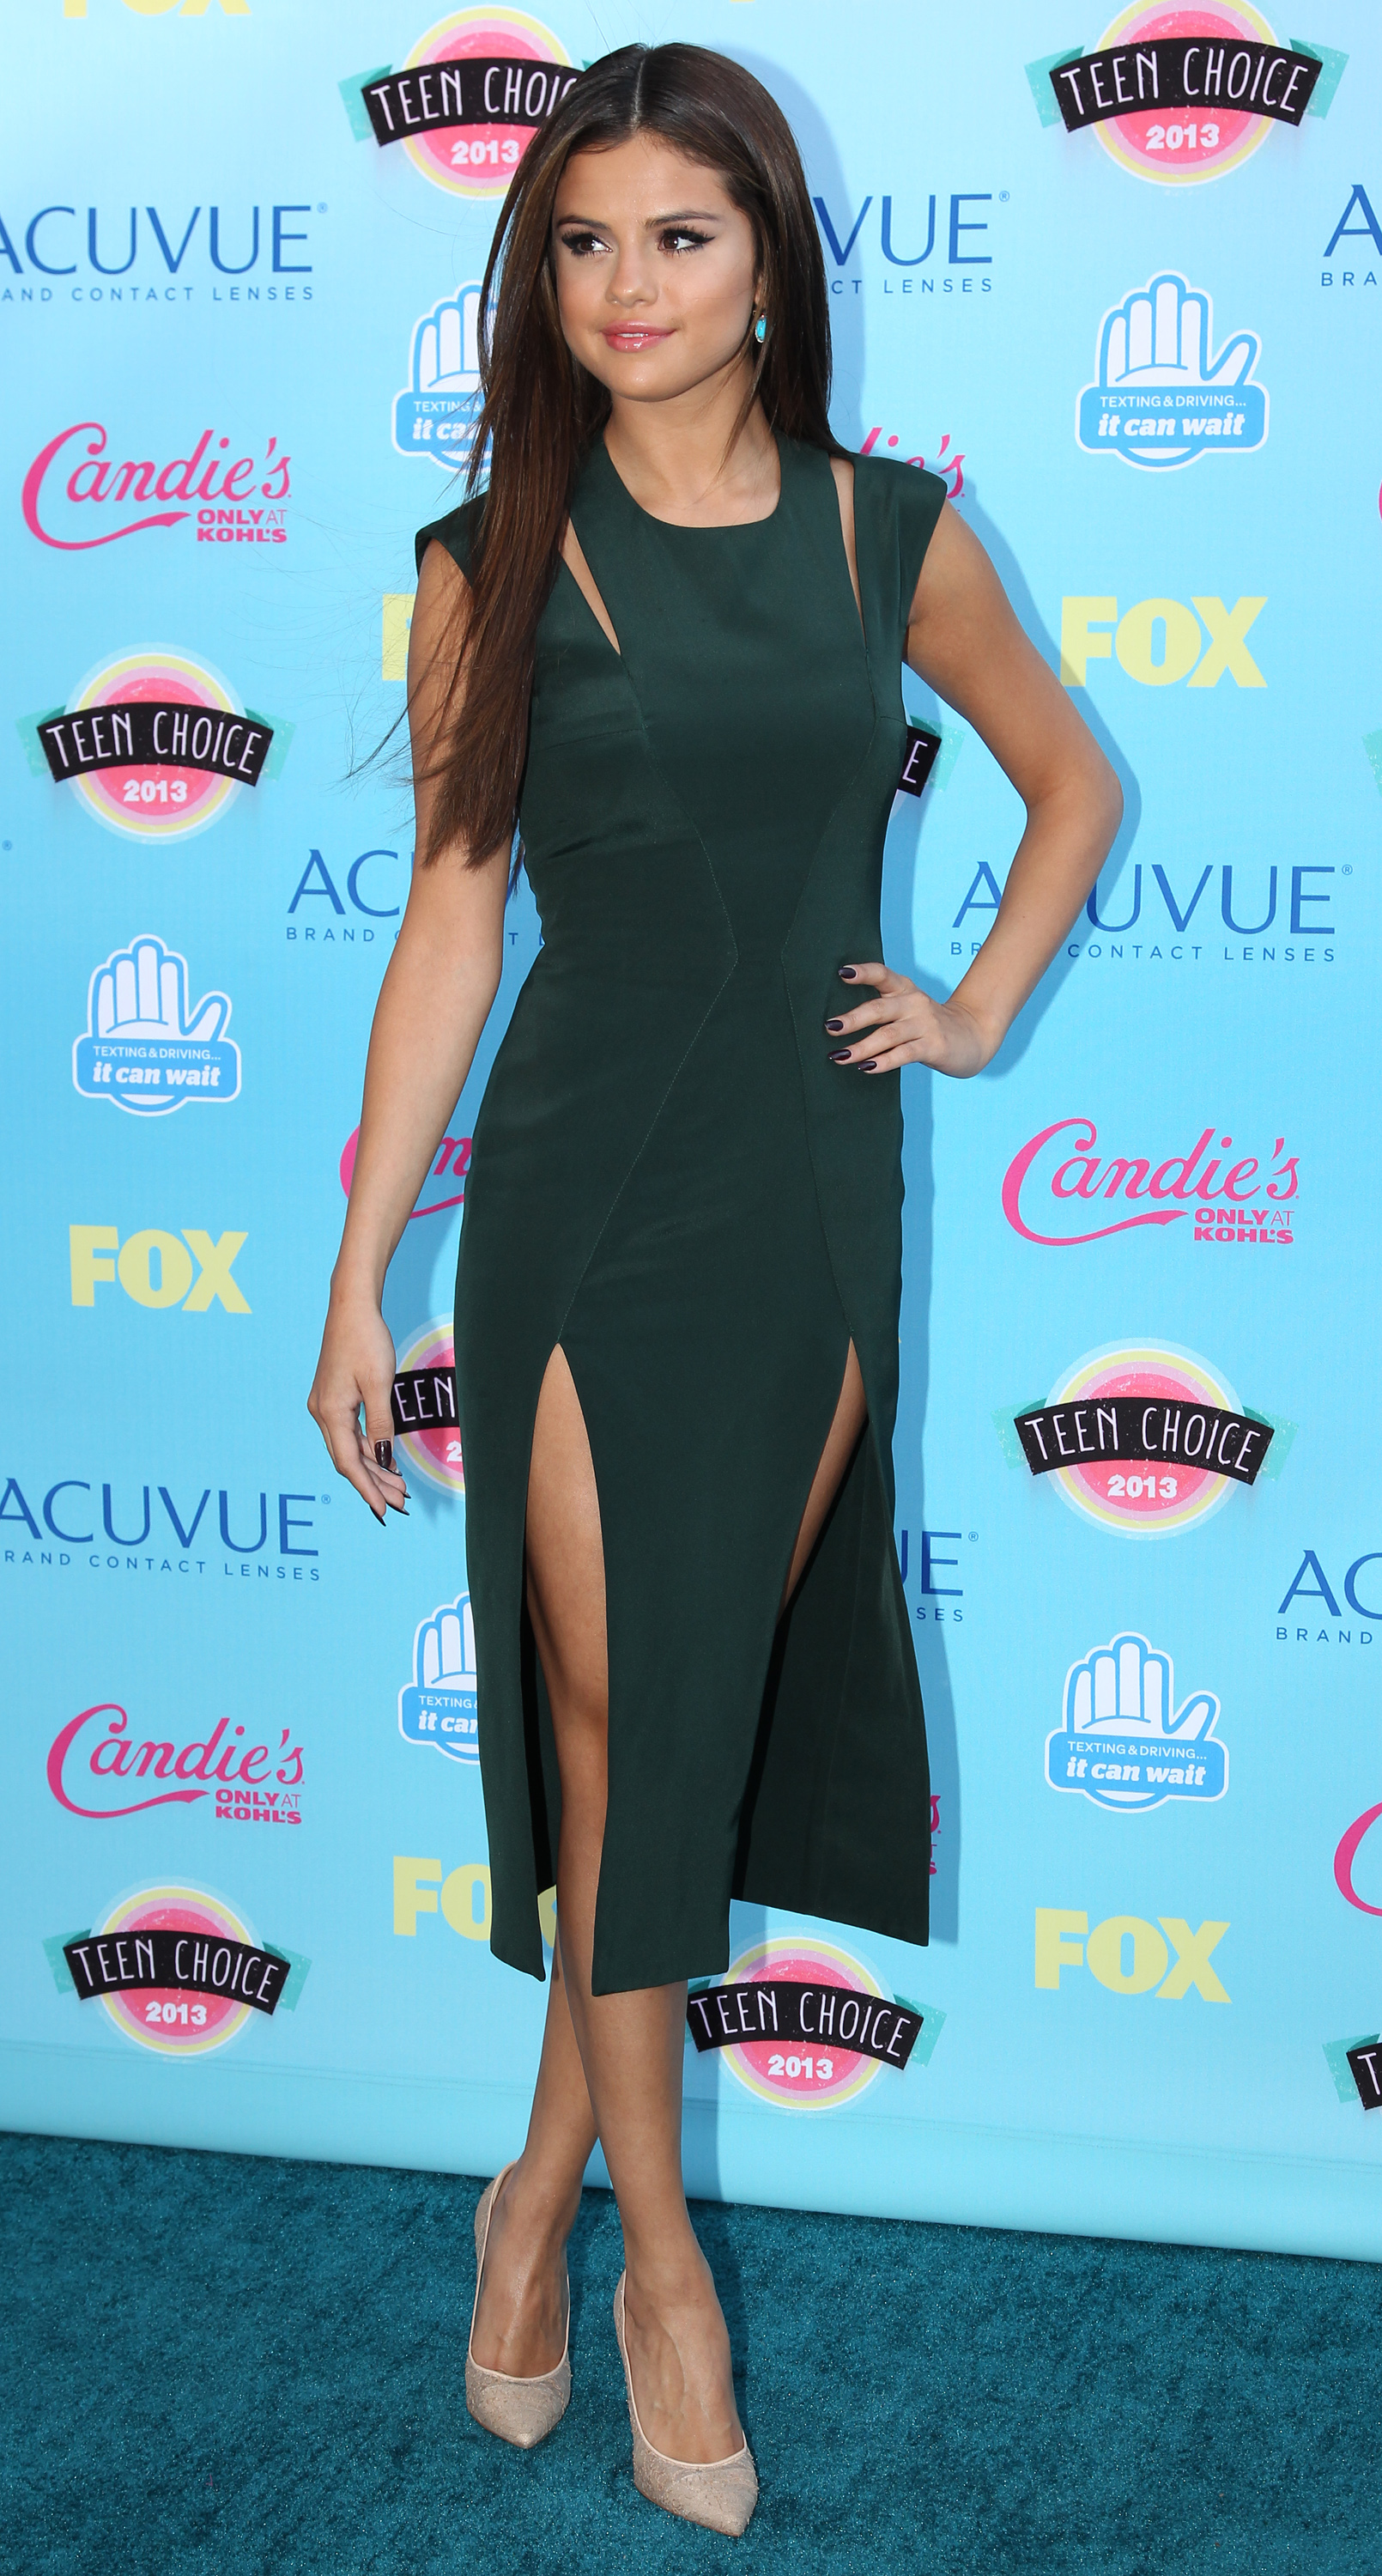 Teen Choice Awards 2013 Best And Worst Dressed On The Tca